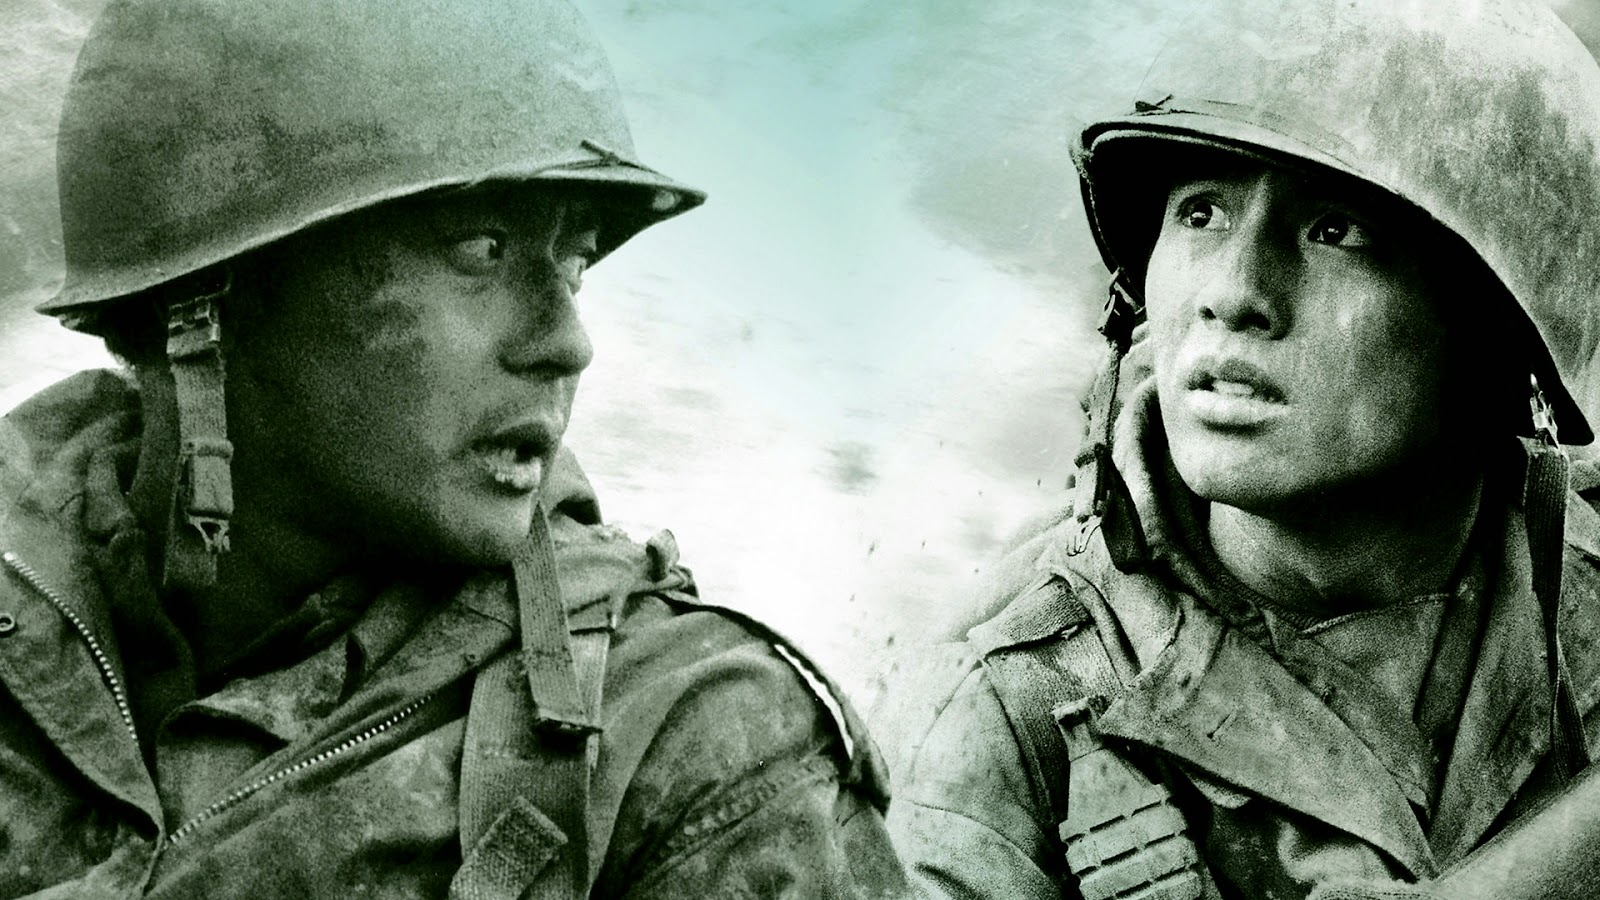 gambar film Tae Guk Gi The Brotherhood of War